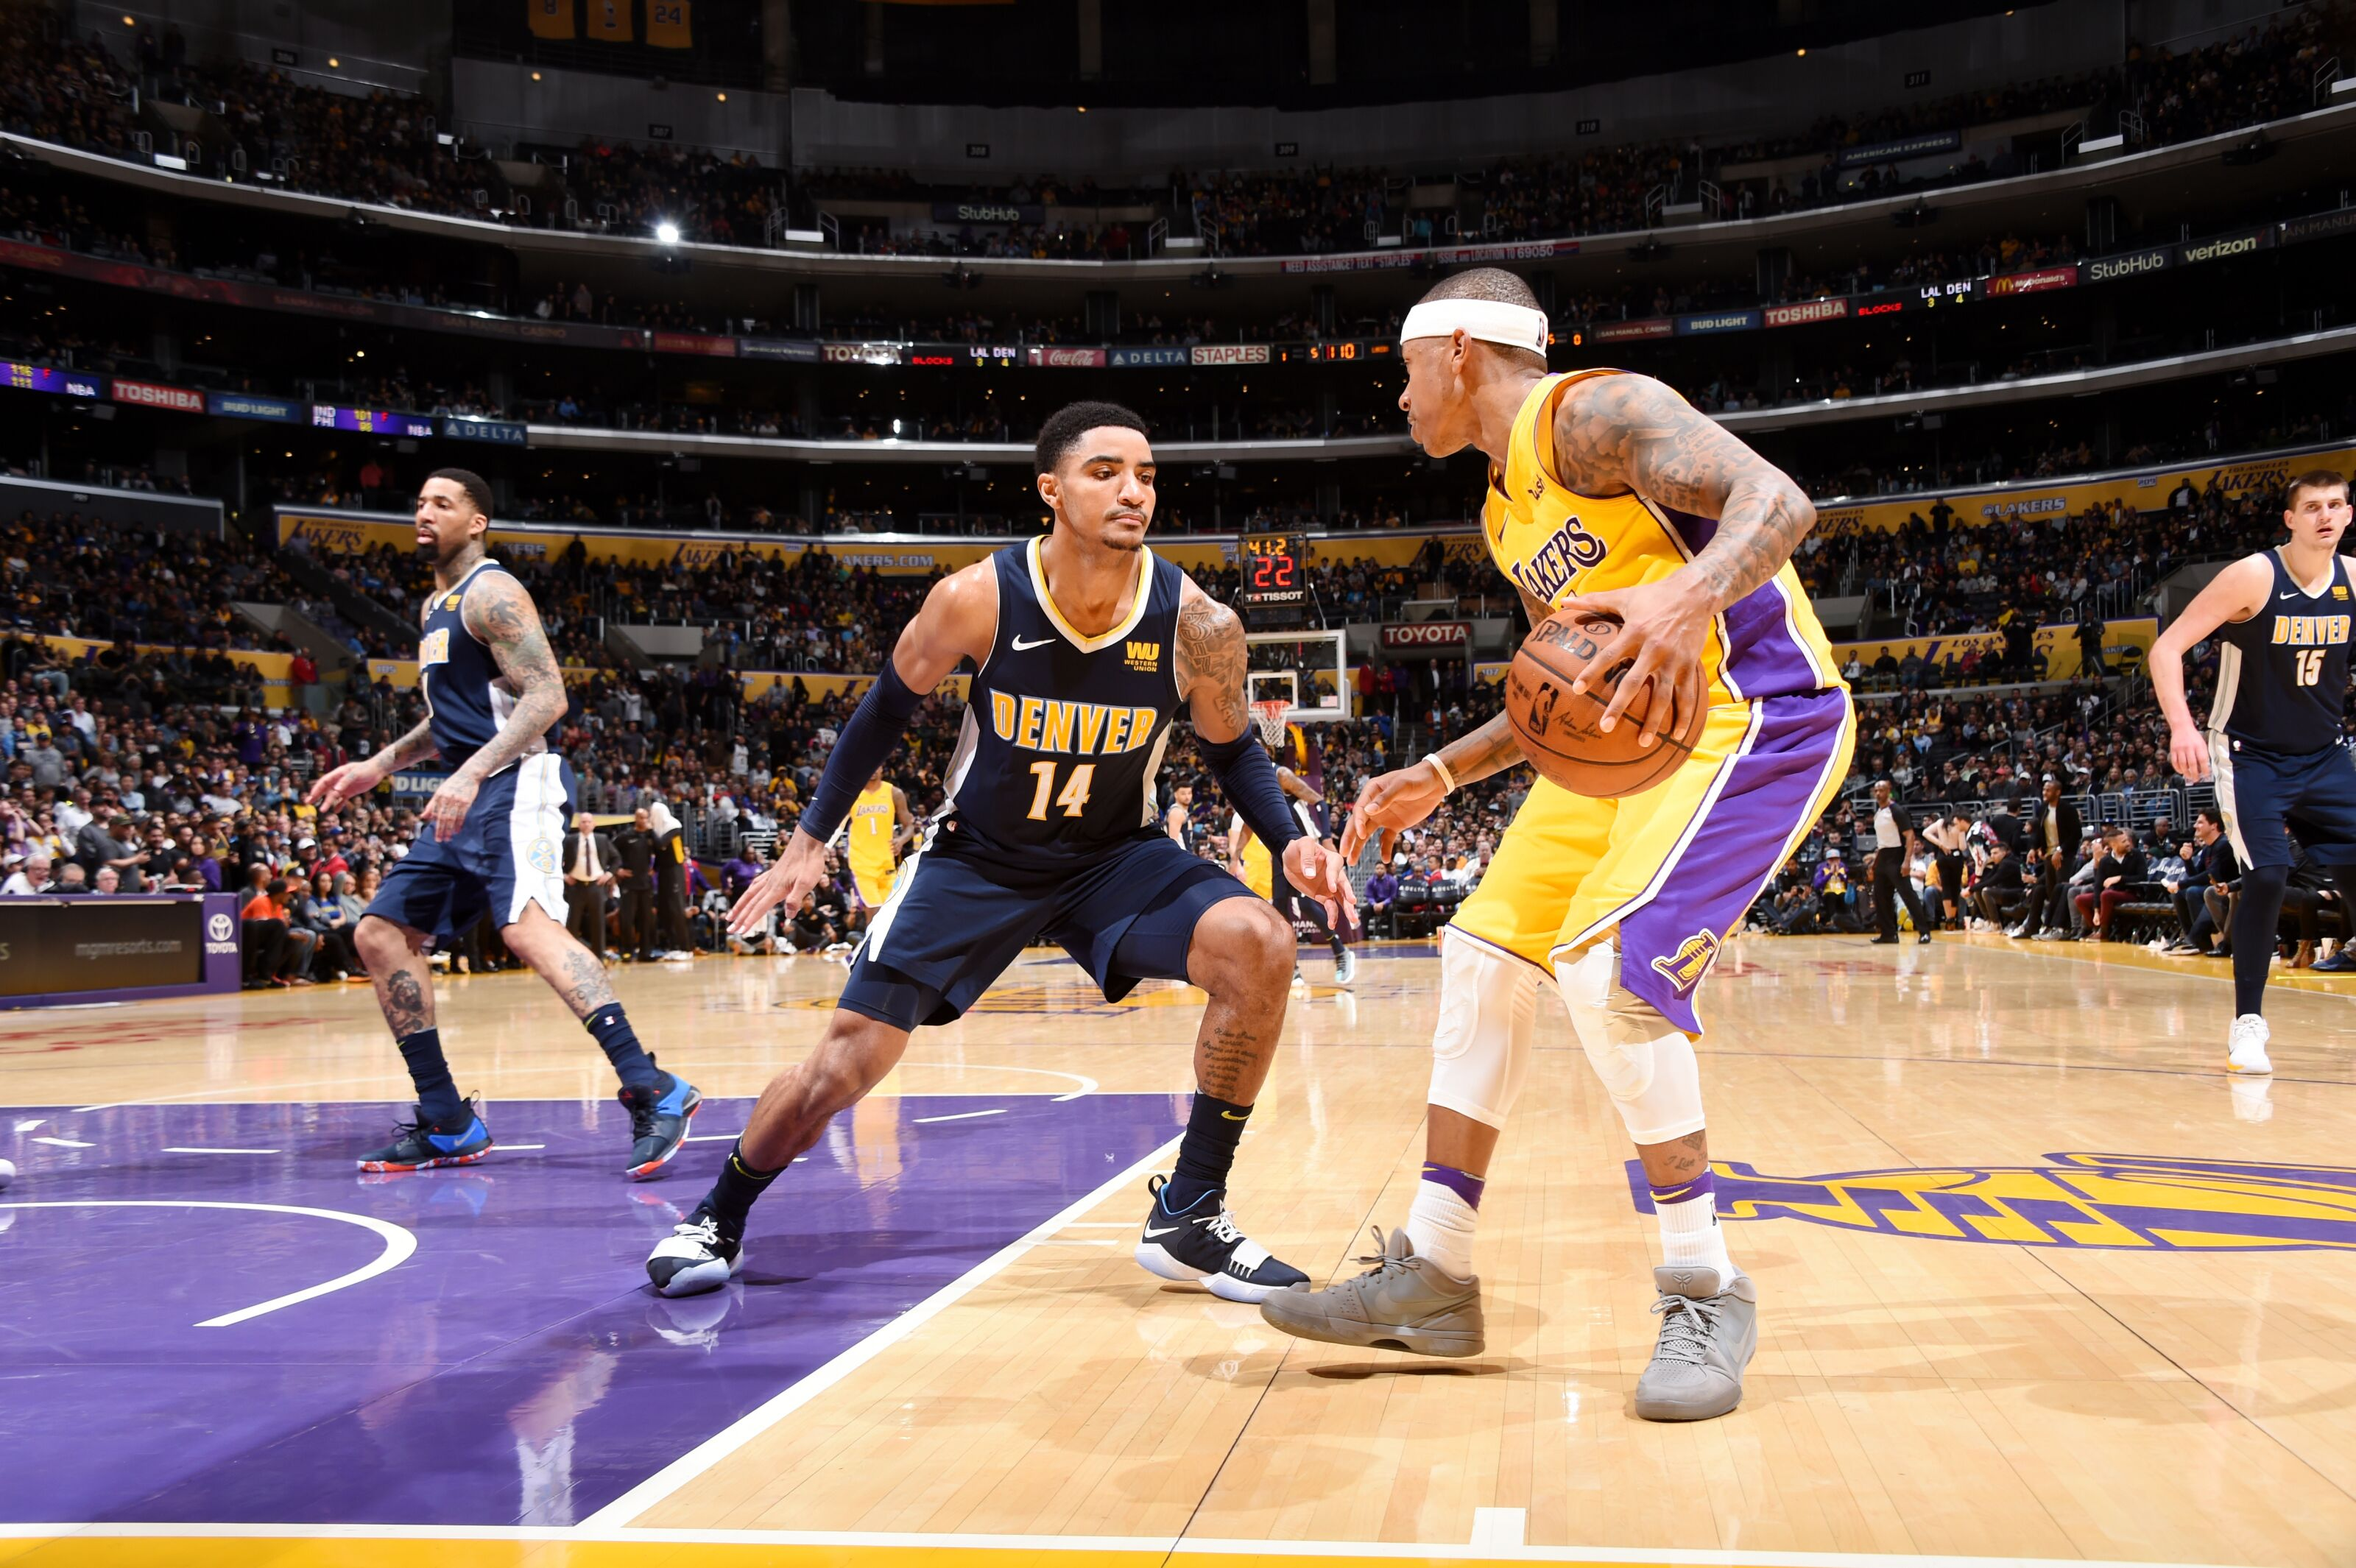 931680680-denver-nuggets-v-los-angeles-lakers.jpg